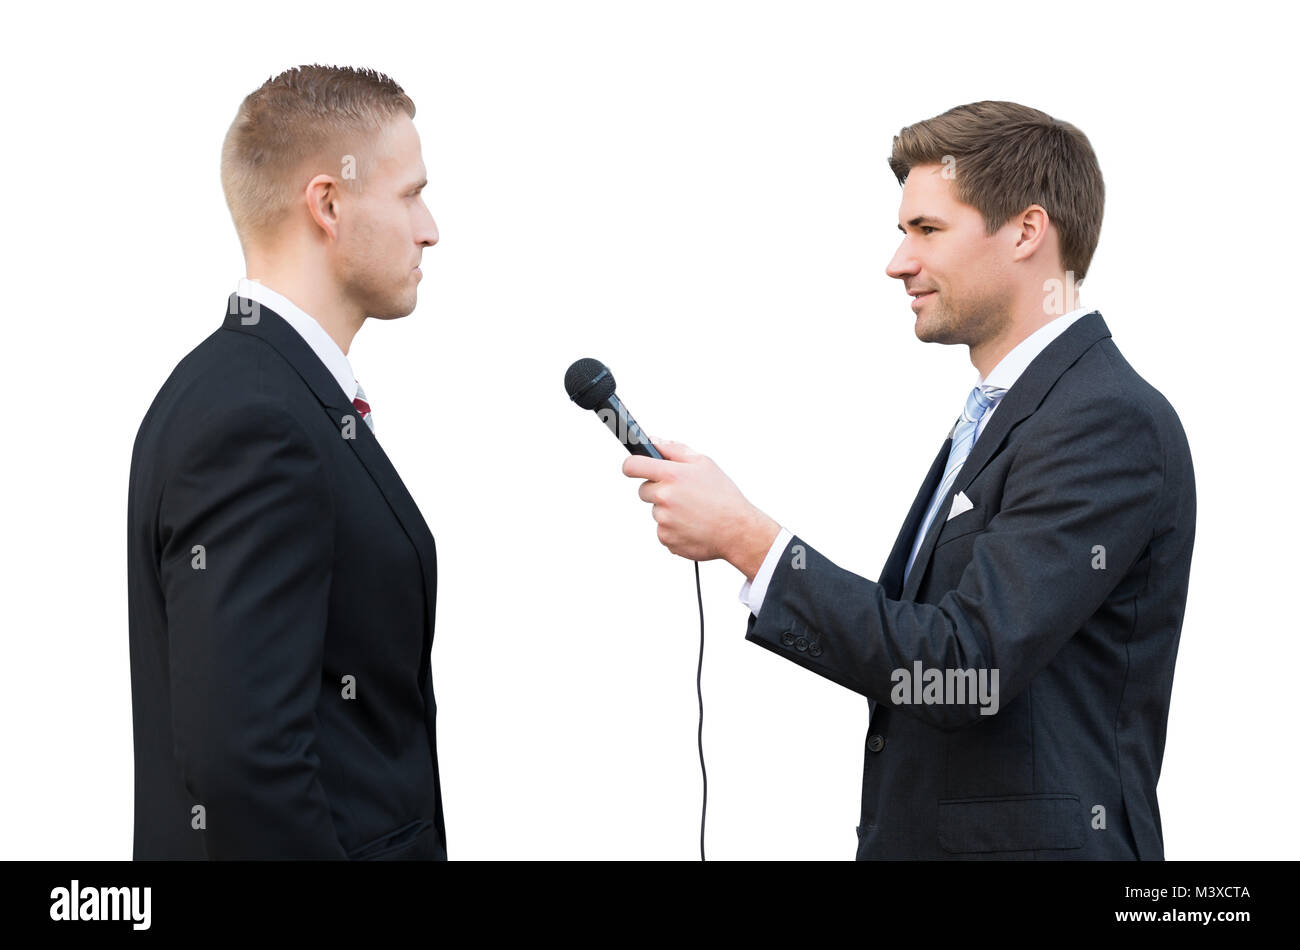 News Reporter Asking Questions To Young Businessman On White Background - Stock Image